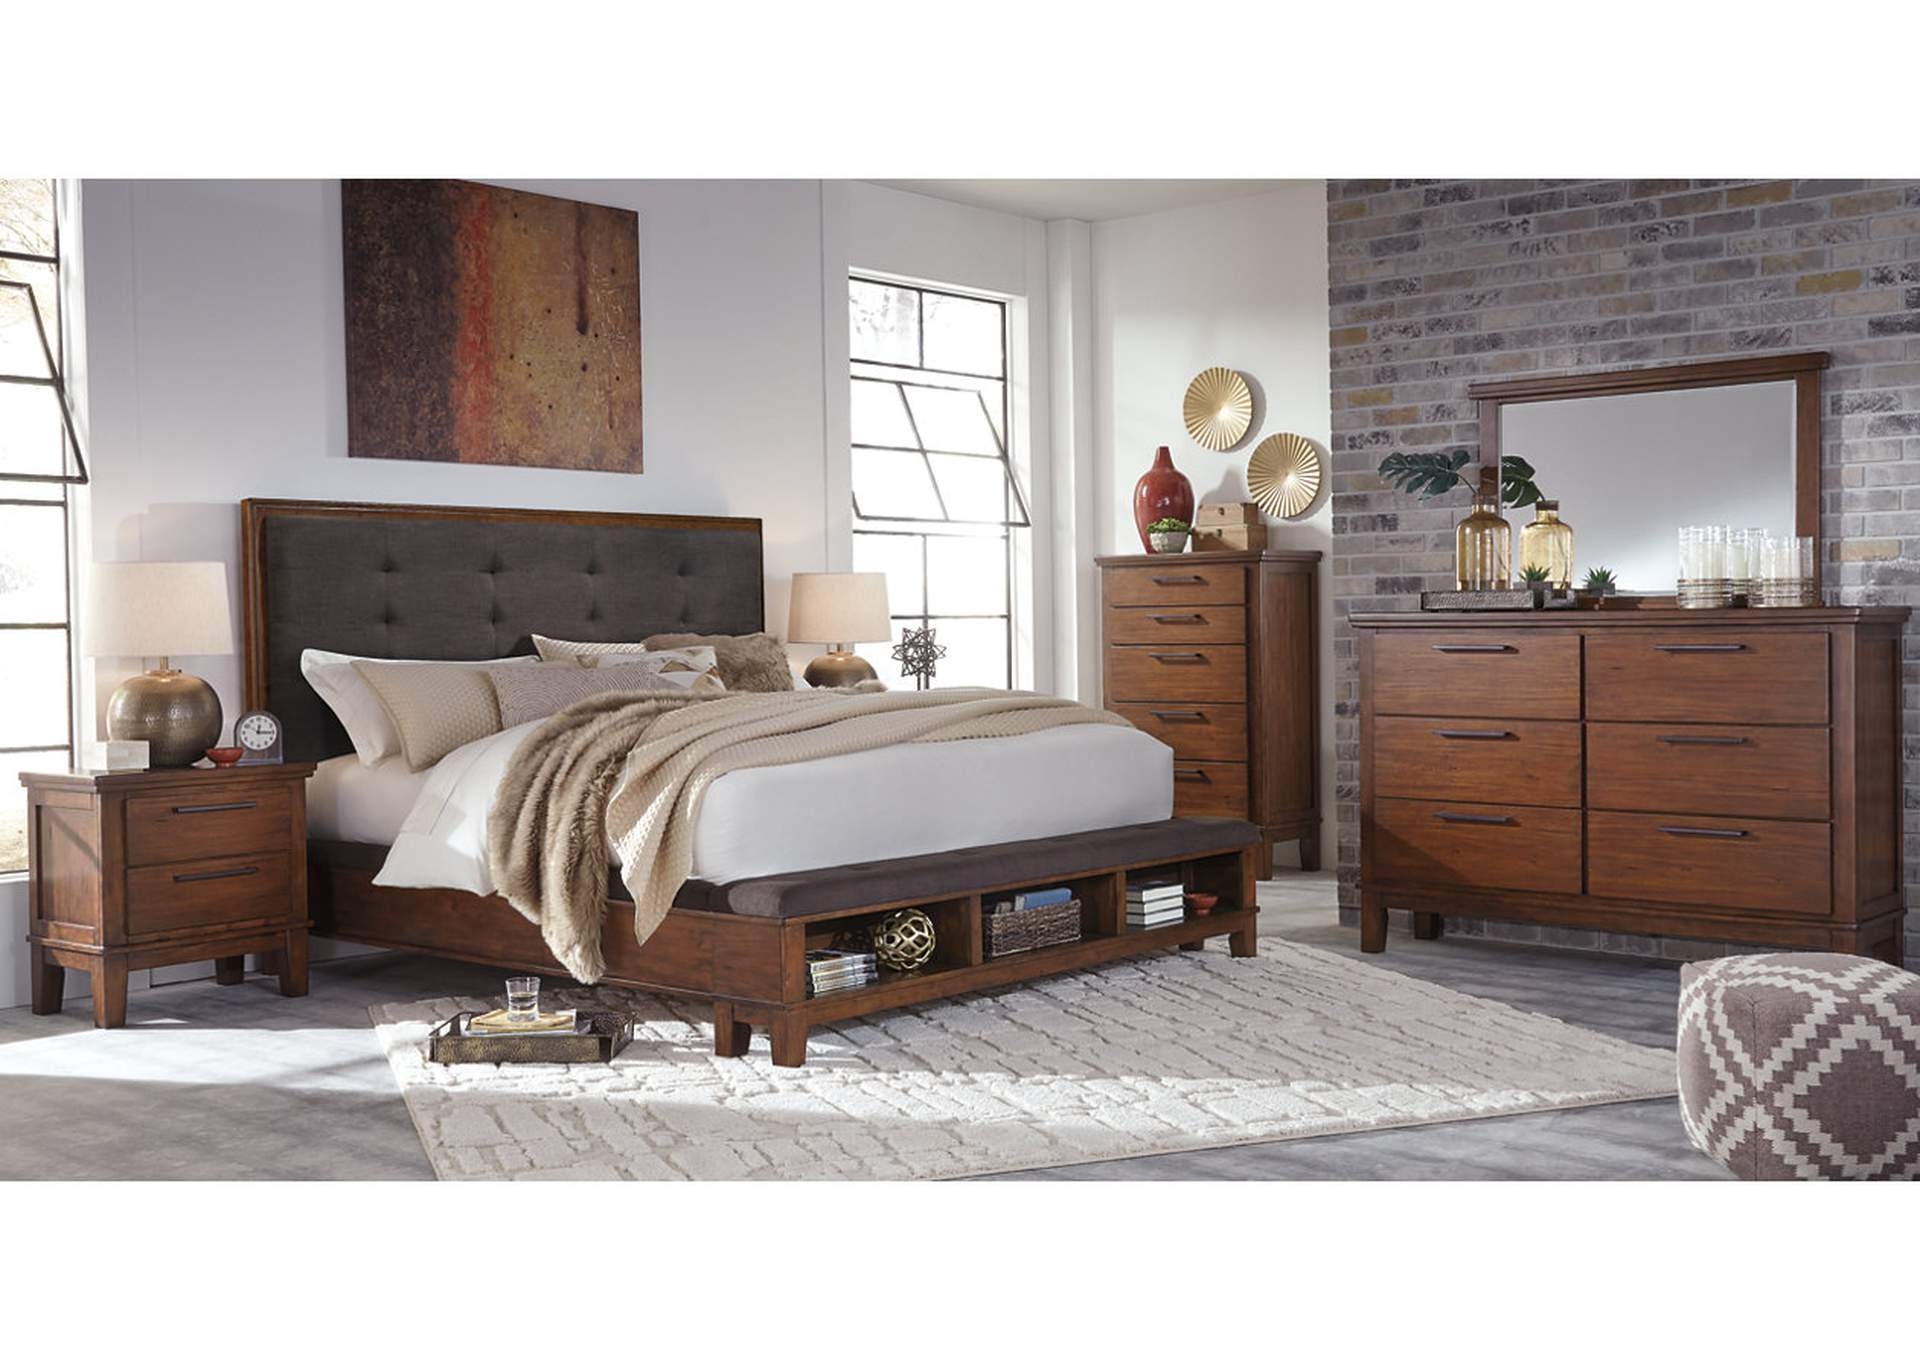 Ralene Medium Brown California King Upholstered Storage Bed w/Dresser, Mirror, Drawer Chest & Nightstand,Signature Design By Ashley